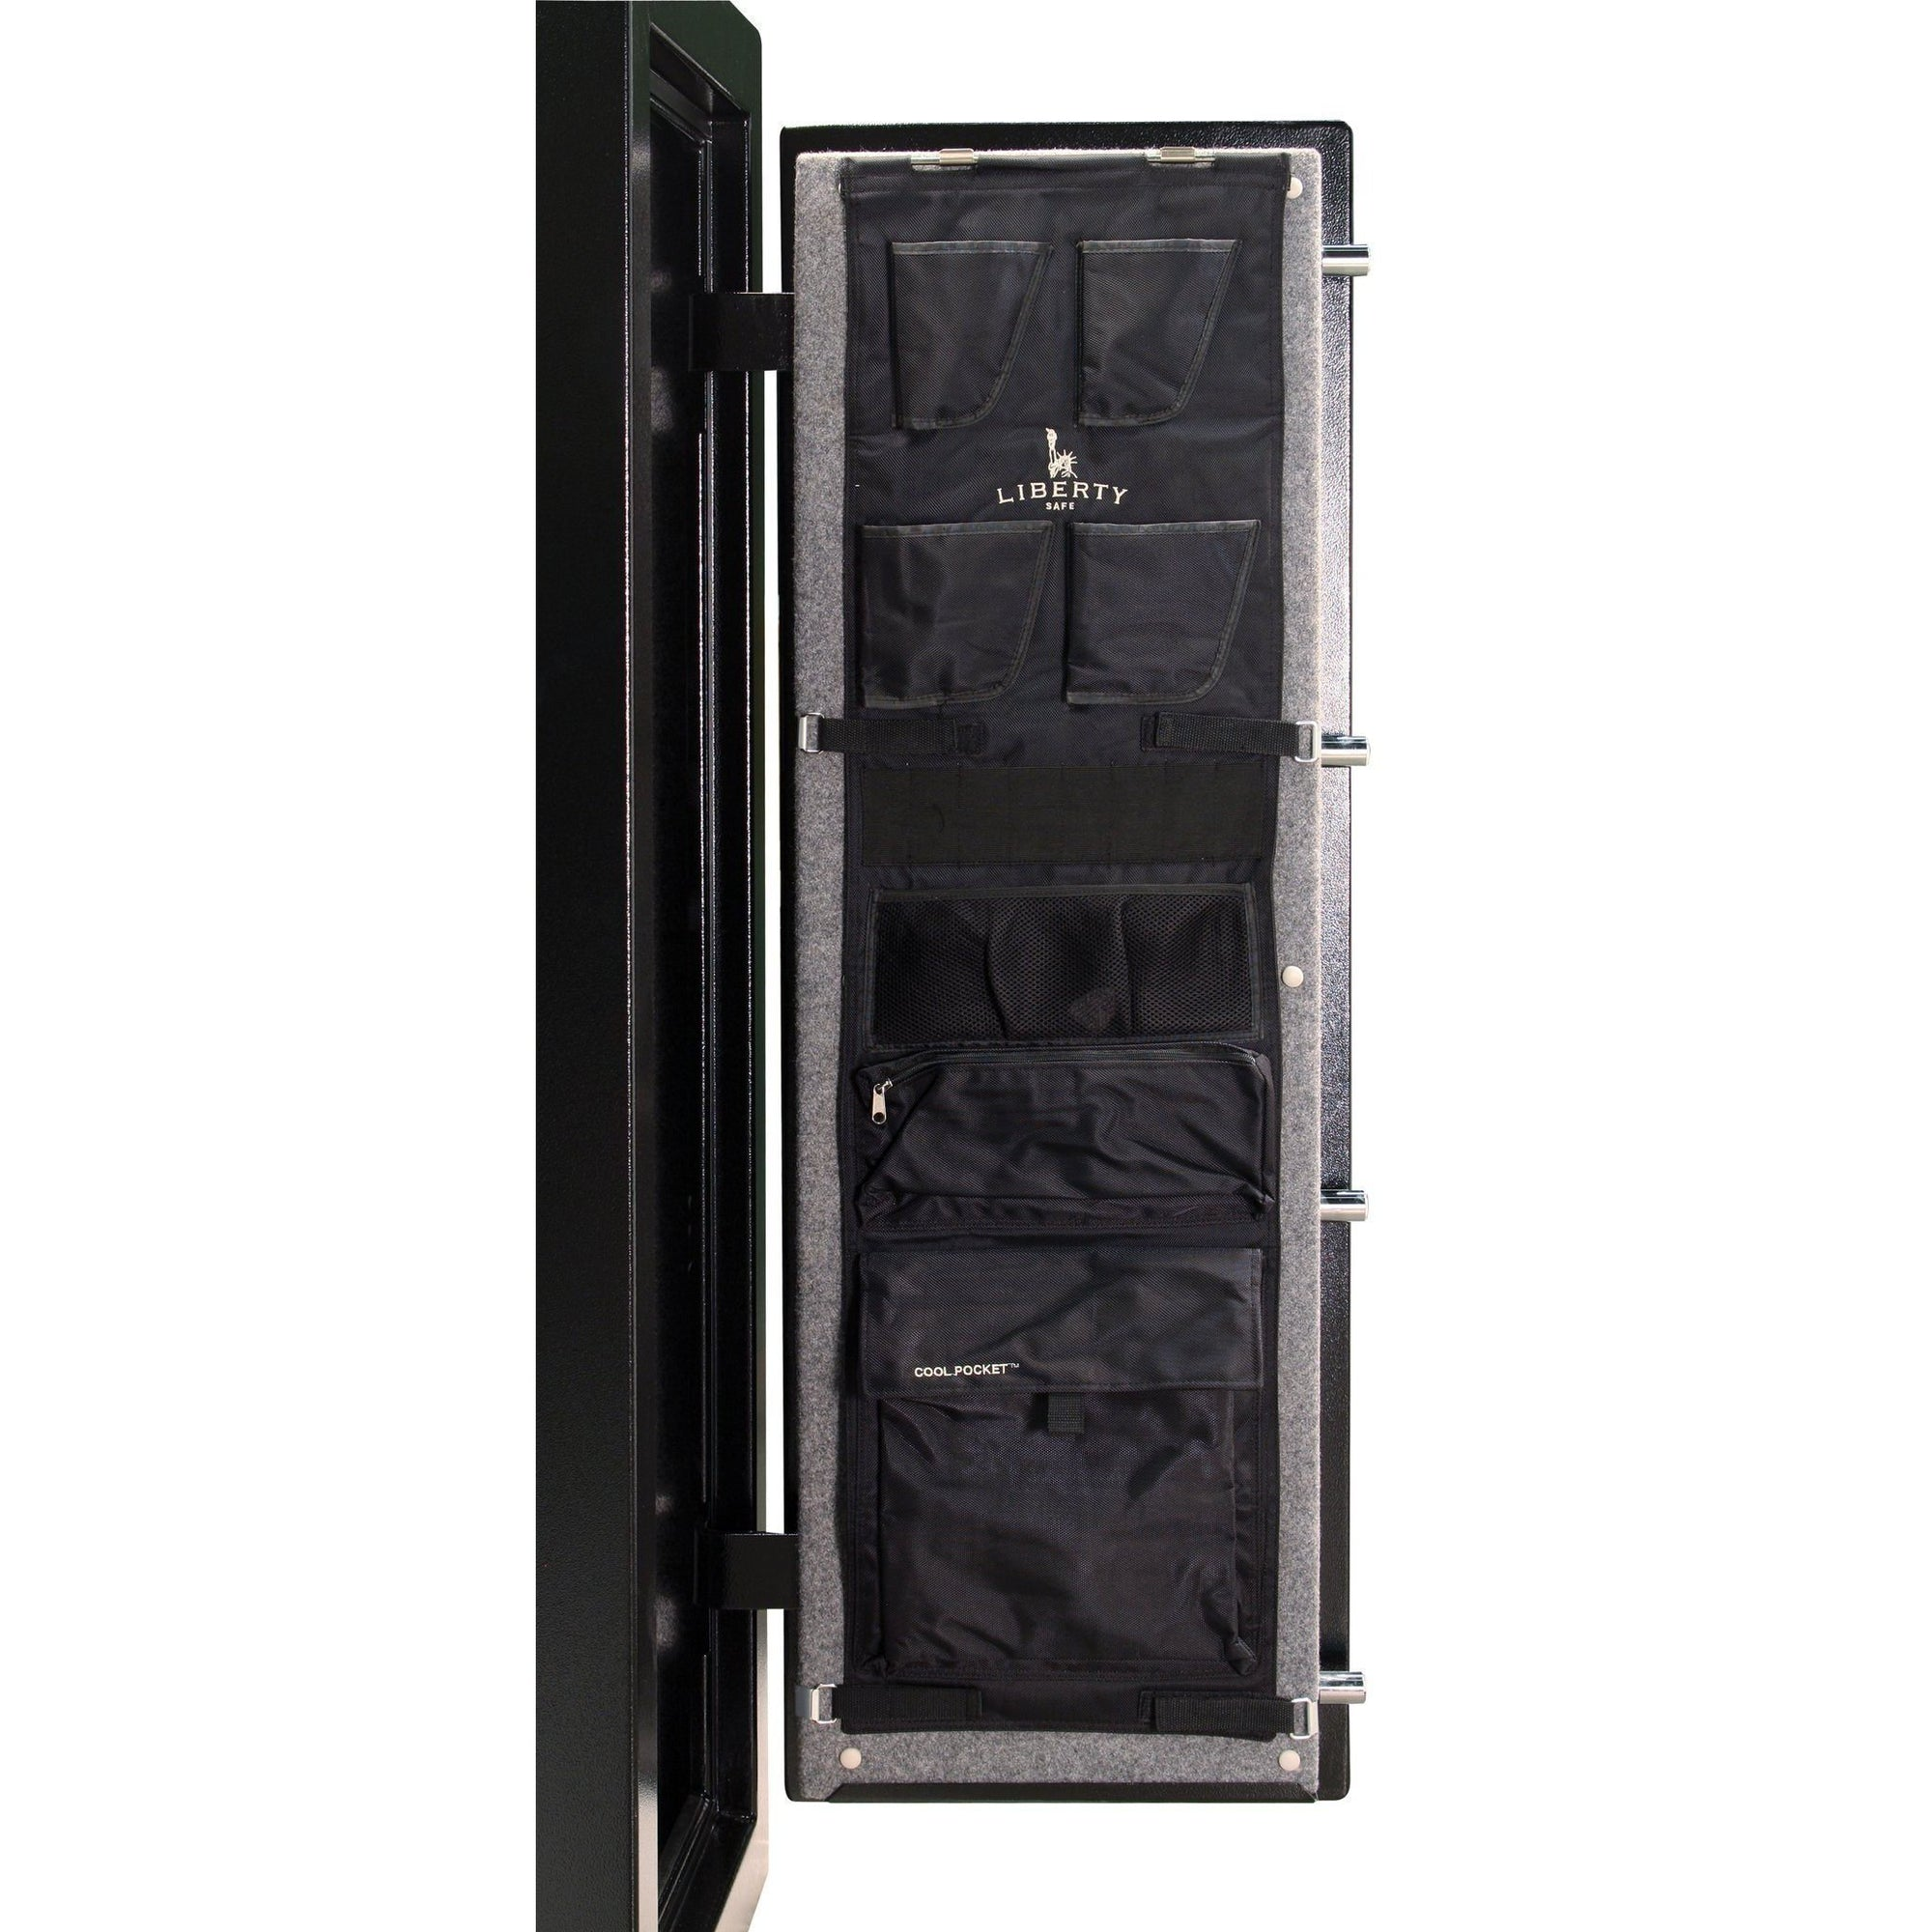 Accessory - Storage - Door Panel - 18 size safes.